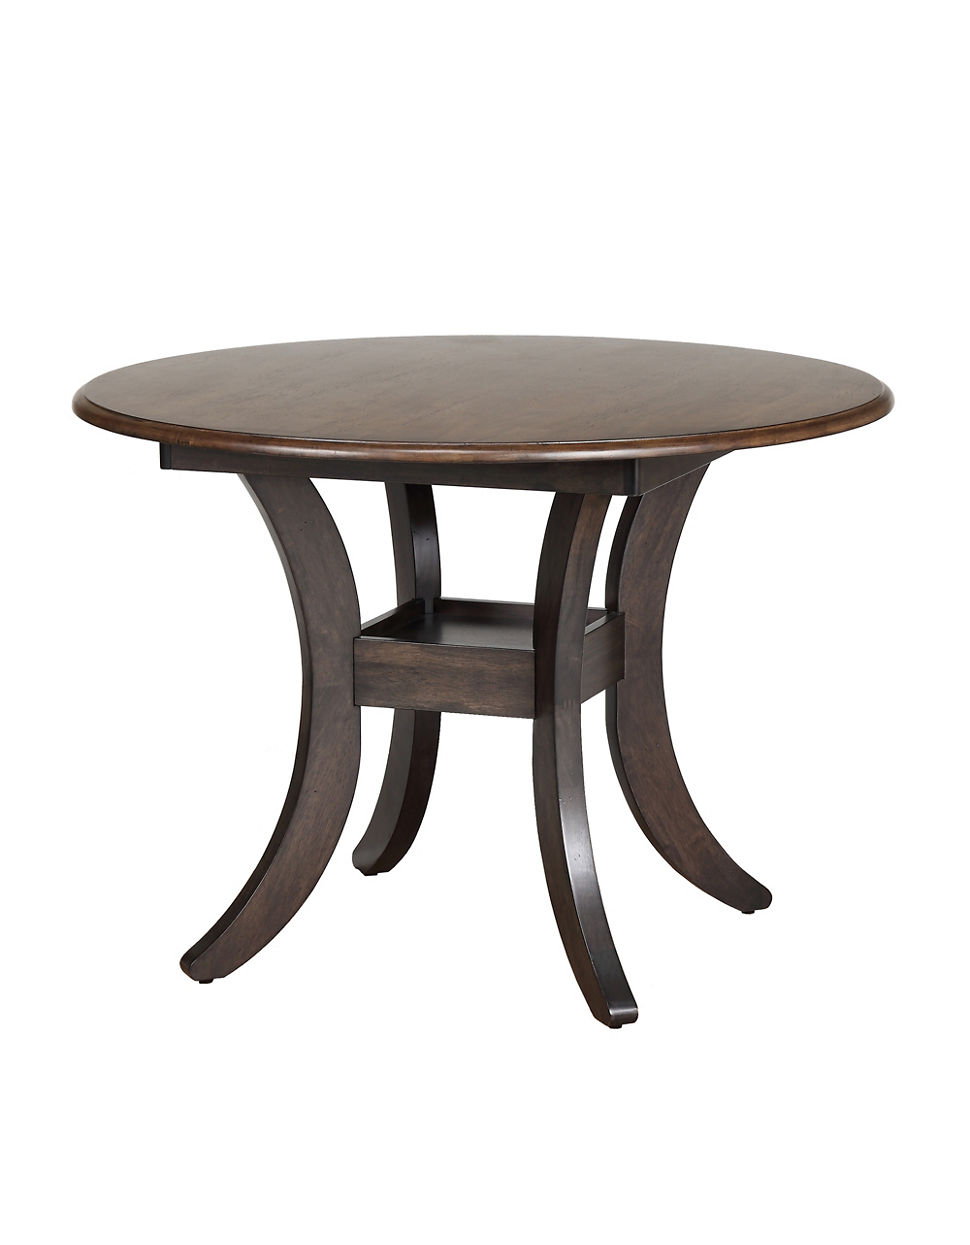 Chloe Round Dining Table